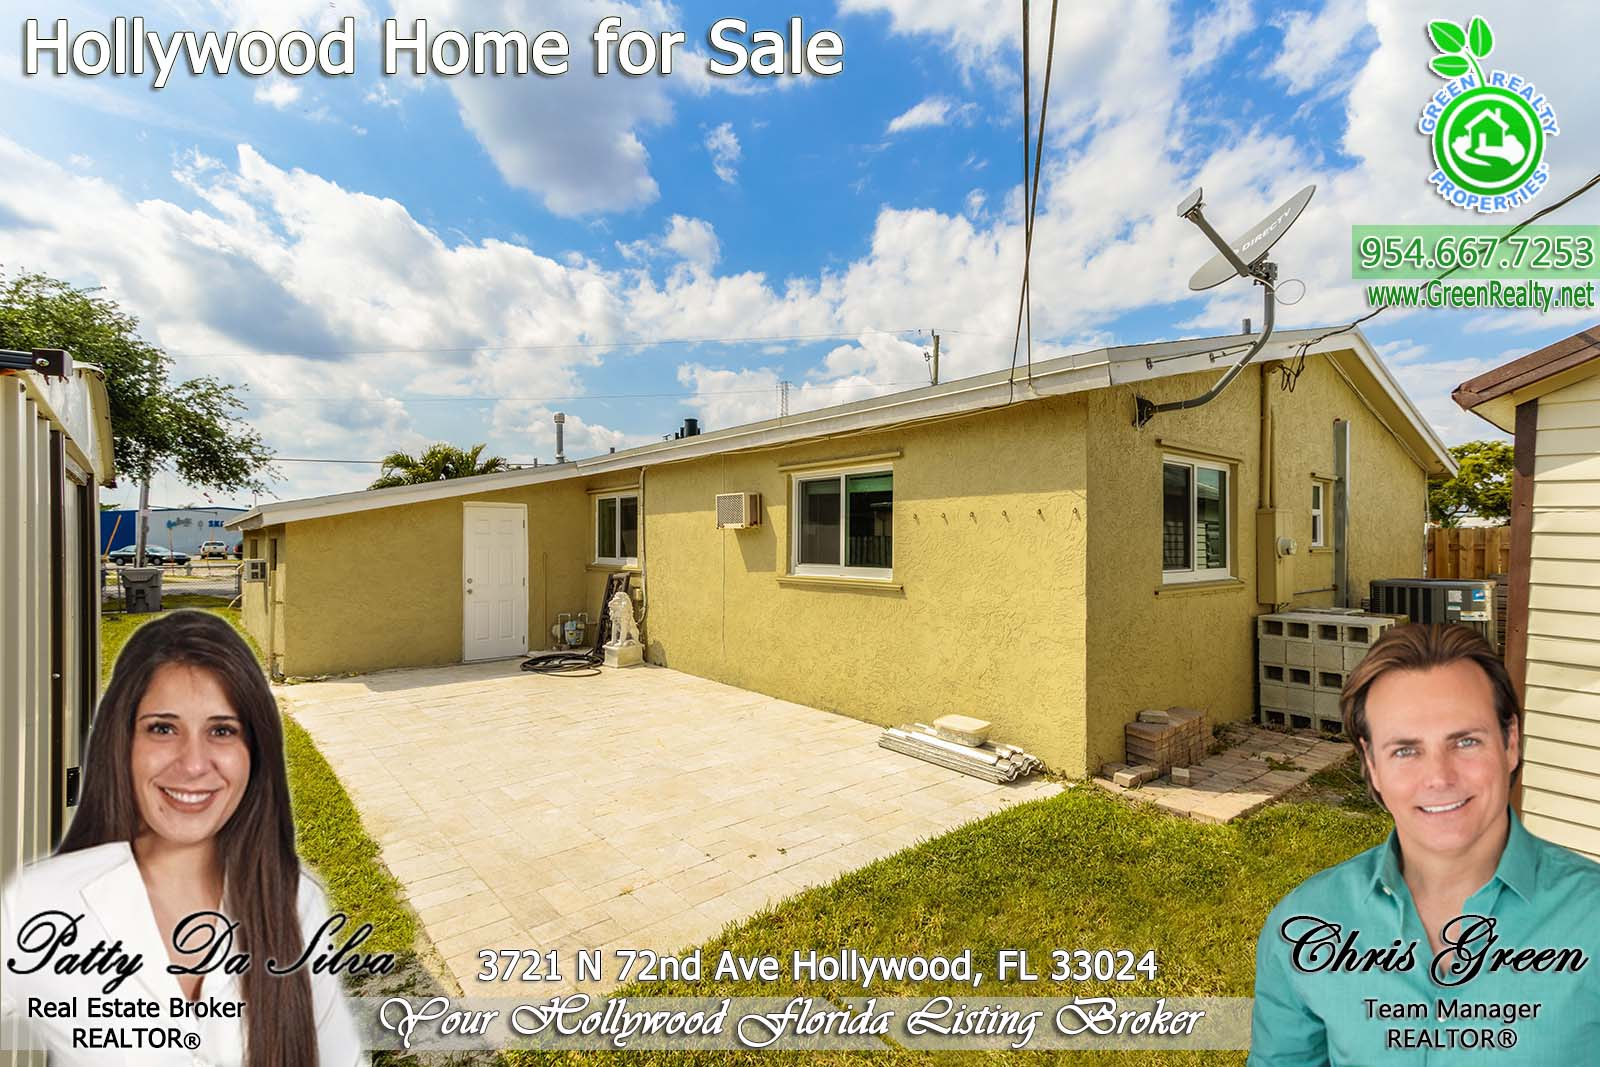 23 Hollywood Florida Real Estate Listing Patty Da Silva Green Realty properties (5)